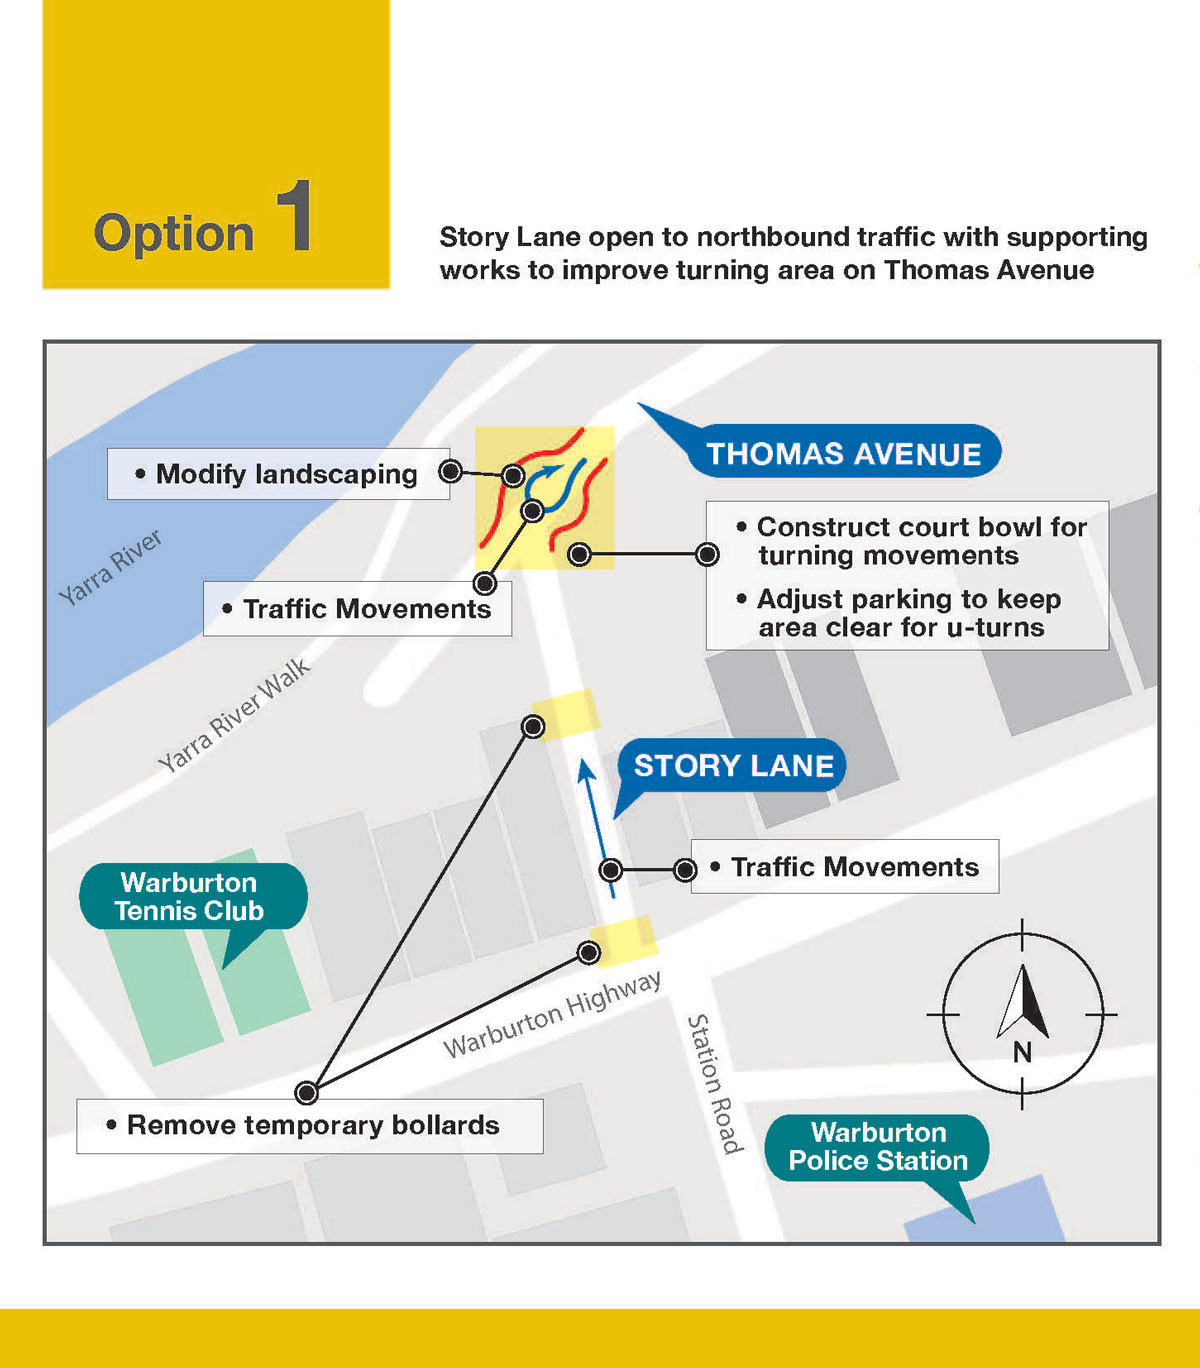 Option 1 - Story Lane open to northbound traffic with supporting works to improve turning area on Thomas Avenue.